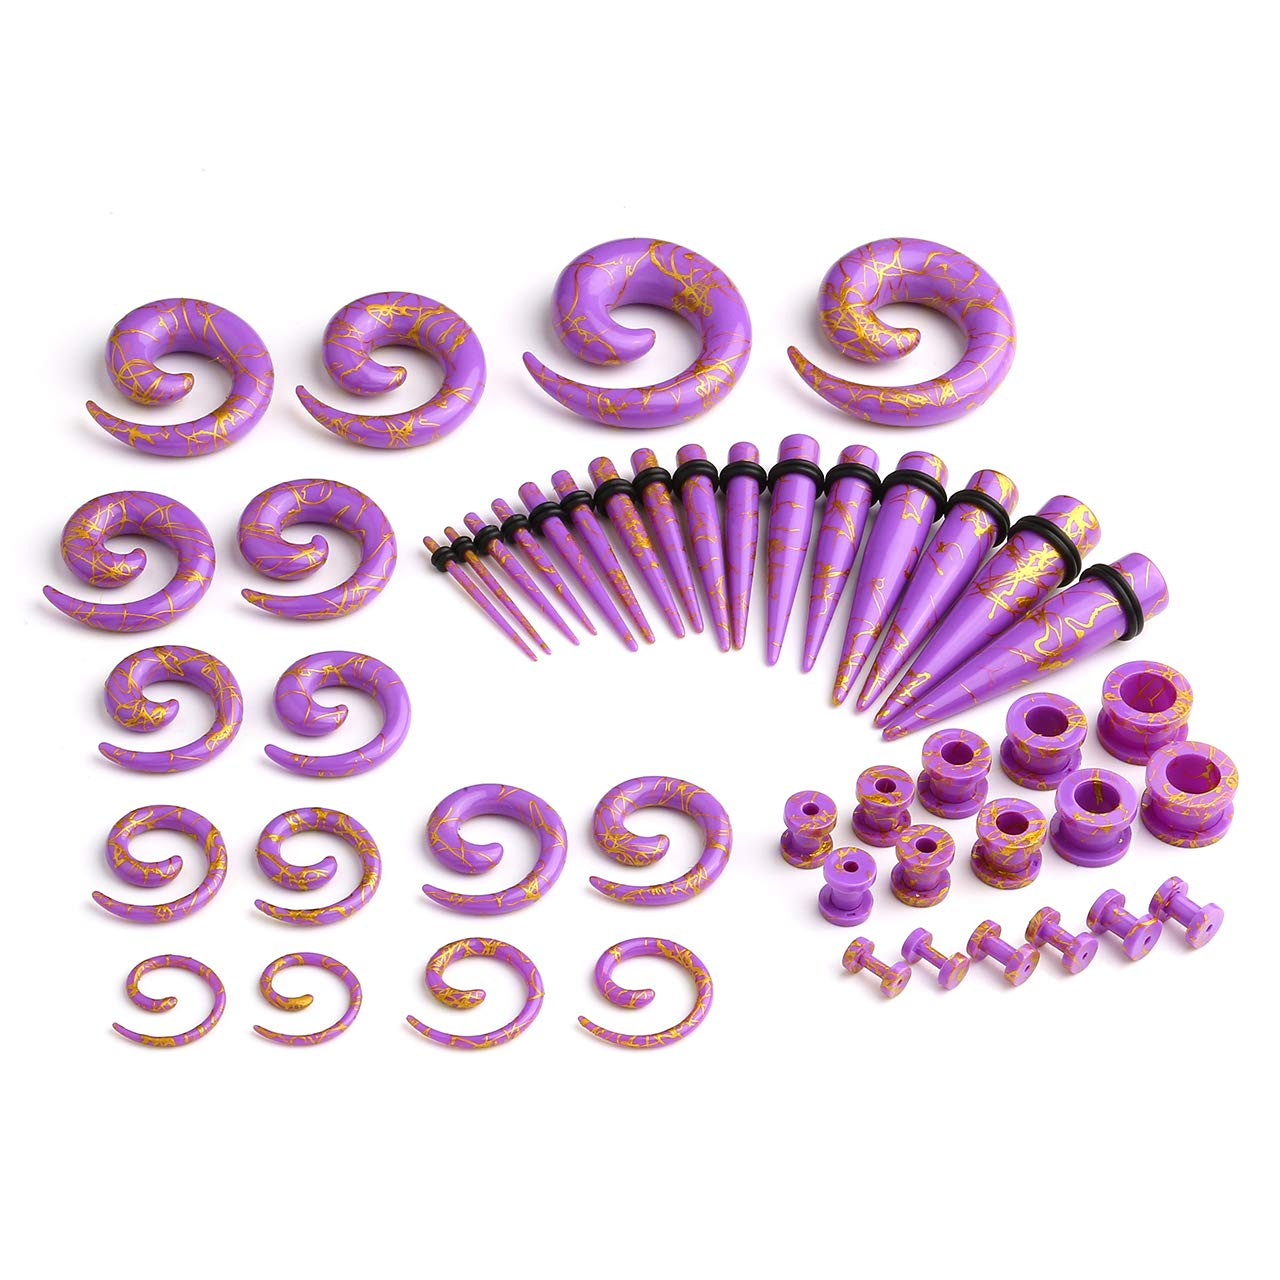 PiercingJ 48pcs Set UV Acrylic Gauge Spiral Snail + Straight Tapers + Tunnels Plug Ear Flesh Taper Stretching Kit 14G-3/4 Ear Gauges Piercing Jewelry by PiercingJ